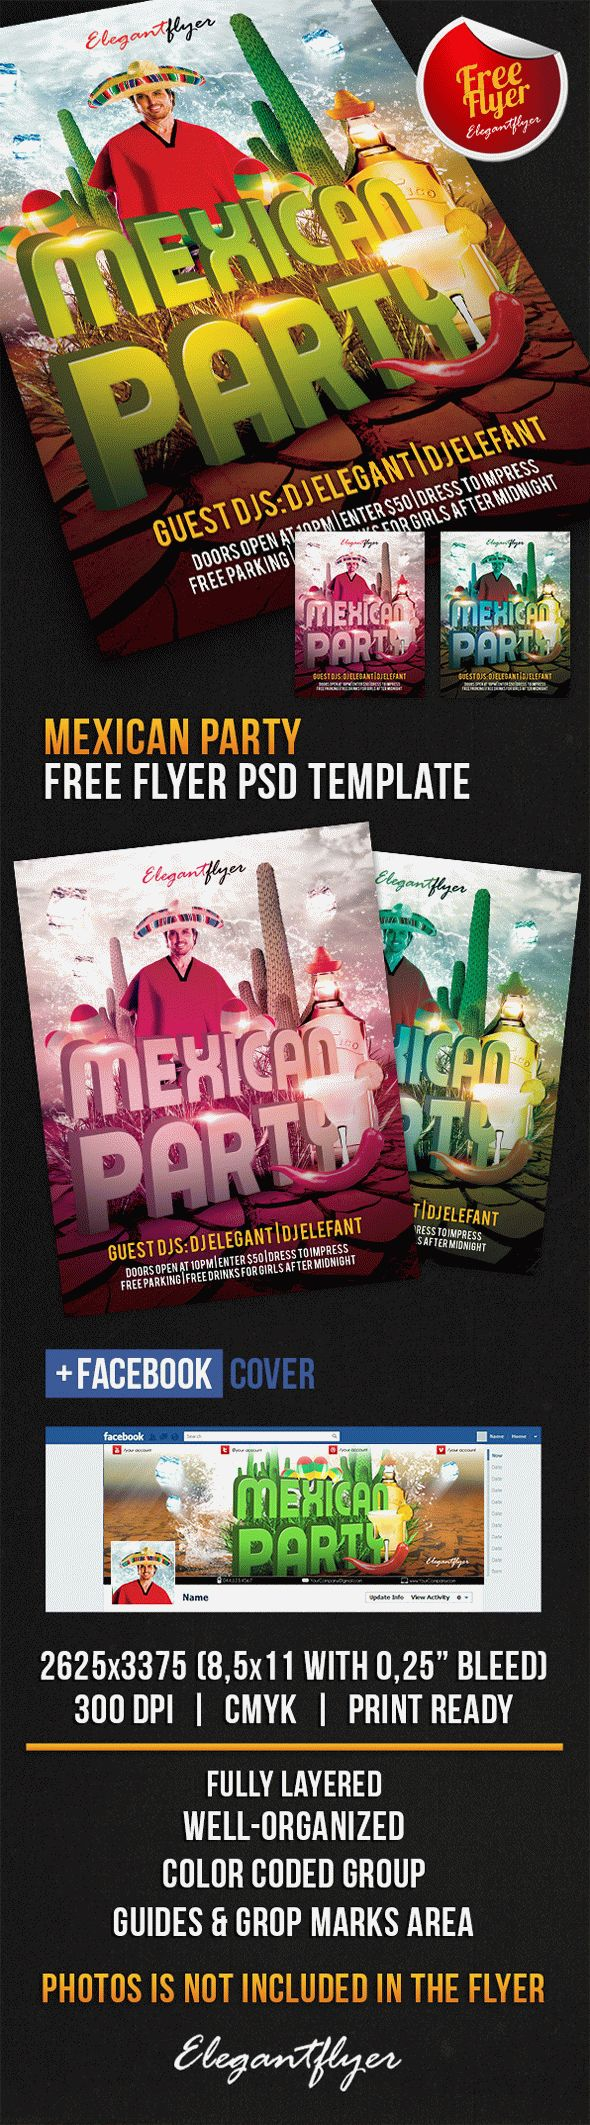 Mexican Party - Free Flyer PSD Template + Facebook Cover